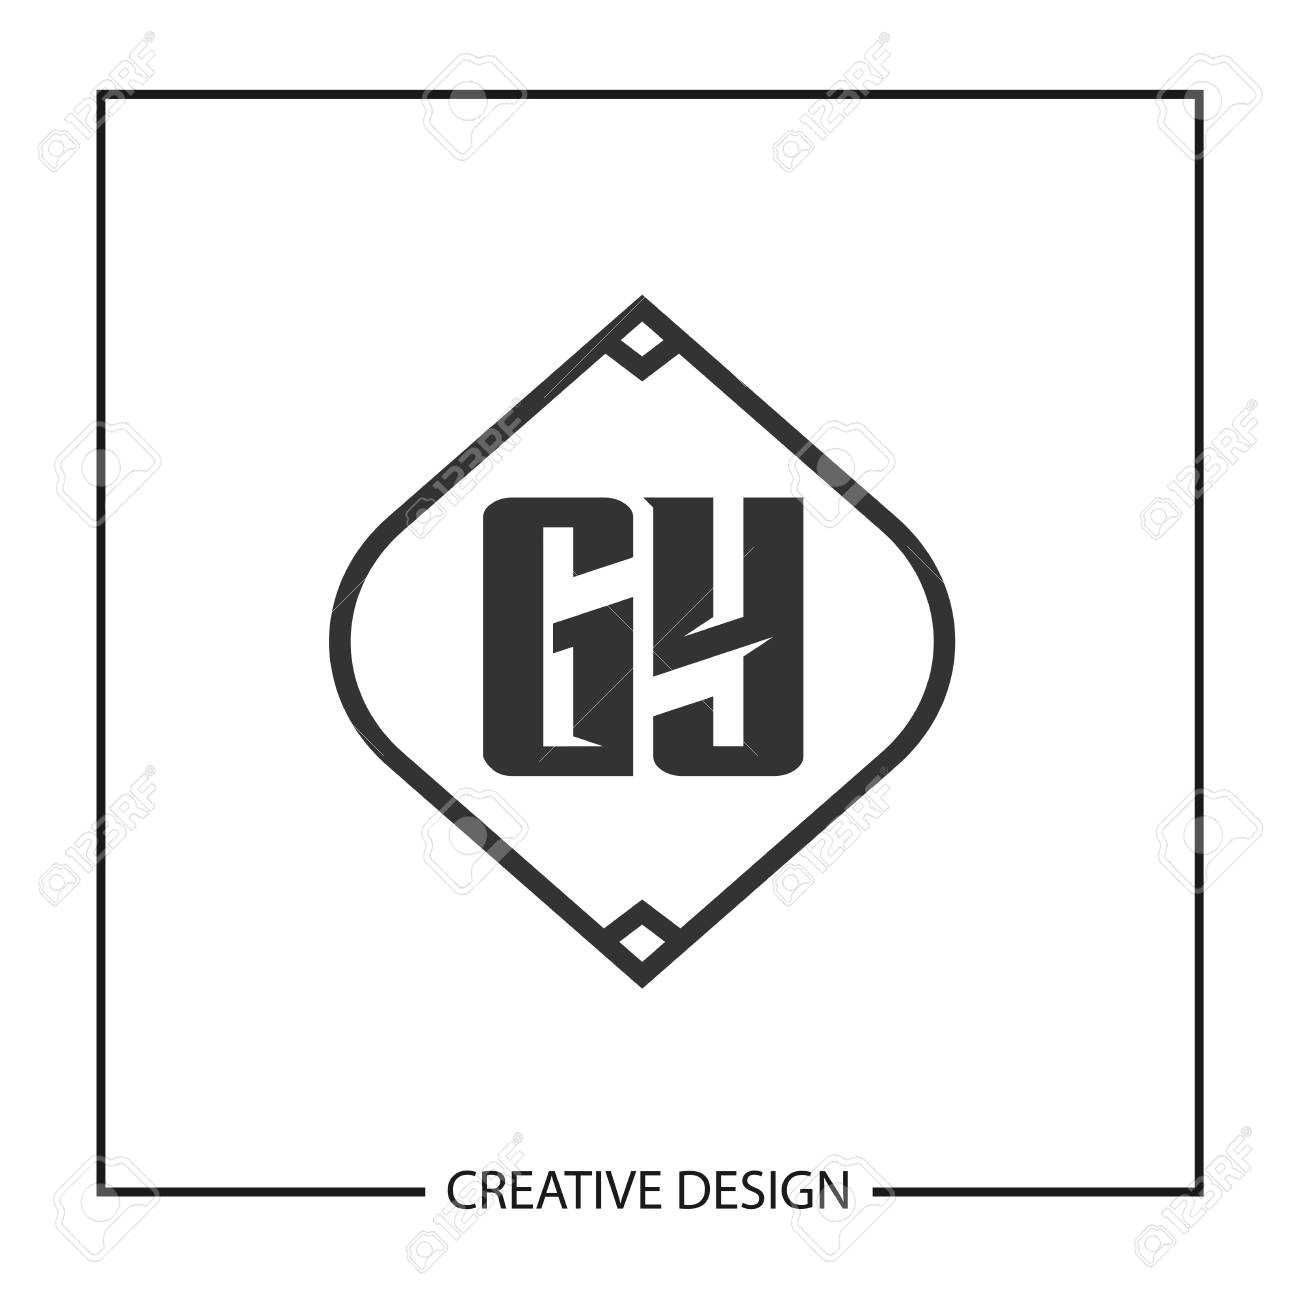 Initial Letter GY Template Design - 125246531